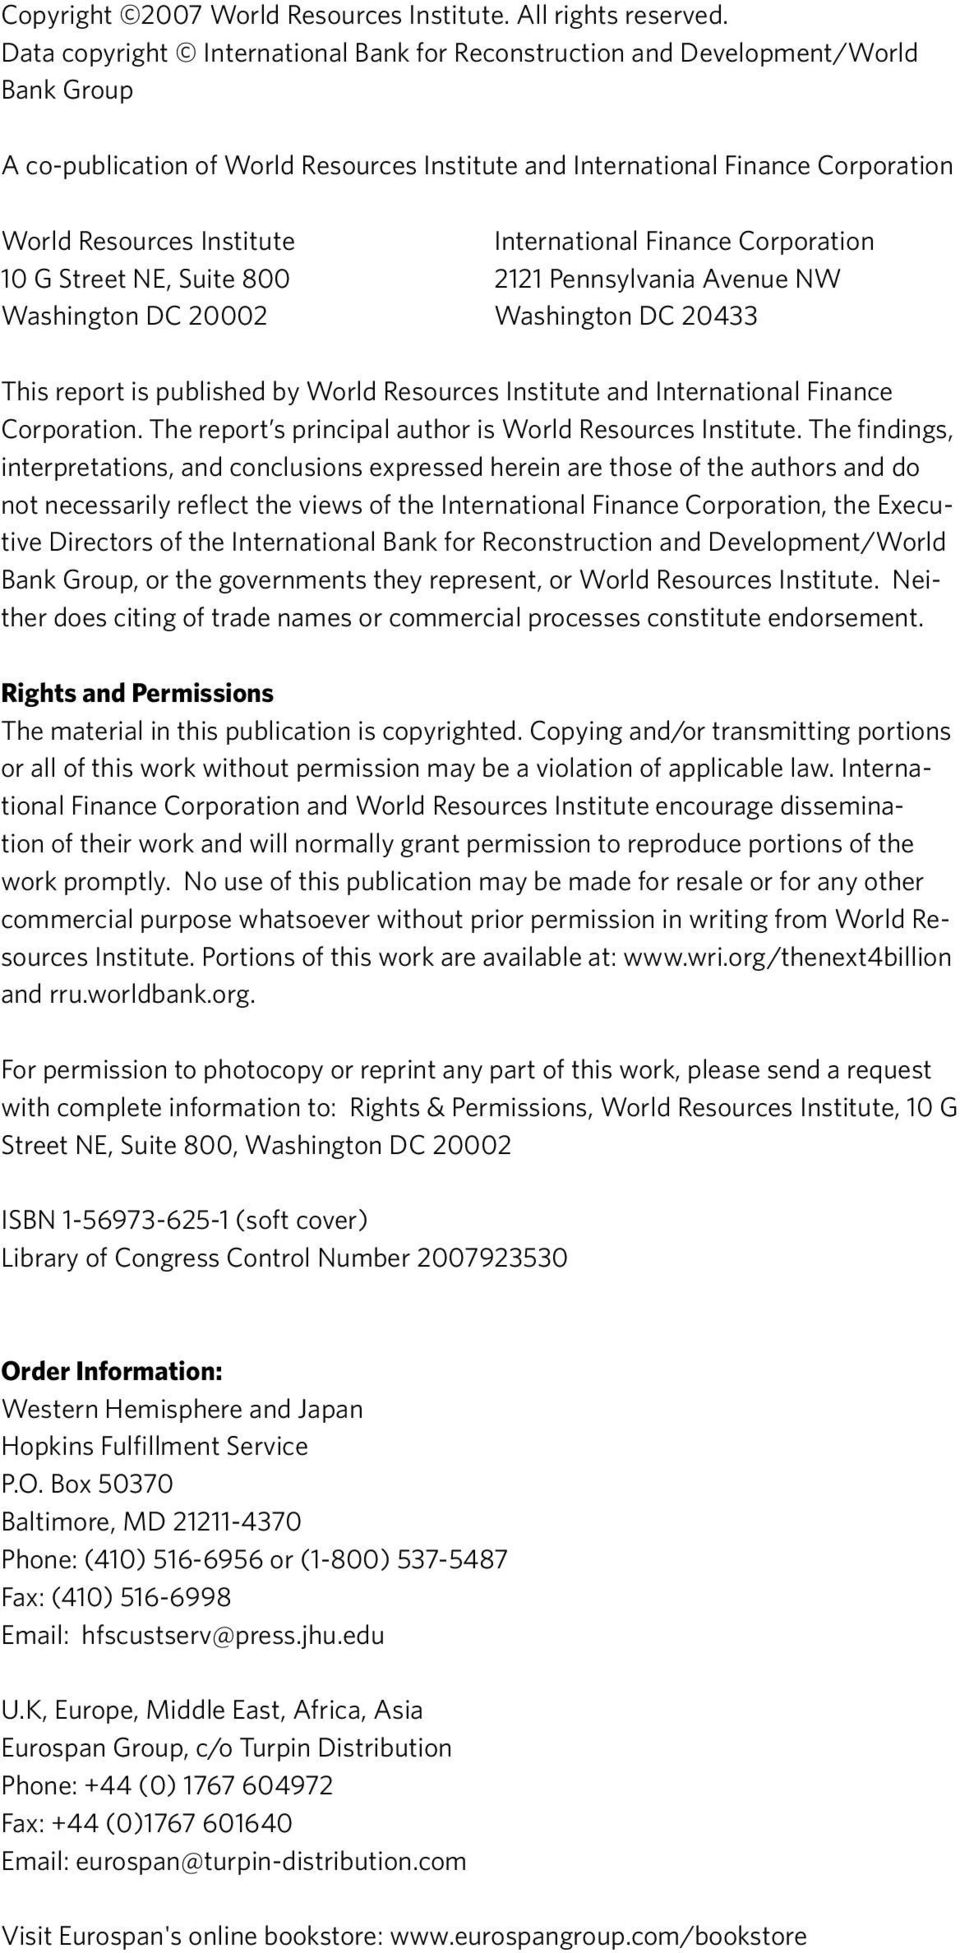 international Finance Corporation 10 G Street NE, Suite 800 2121 Pennsylvania Avenue NW Washington DC 20002 Washington DC 20433 This report is published by World Resources Institute and International